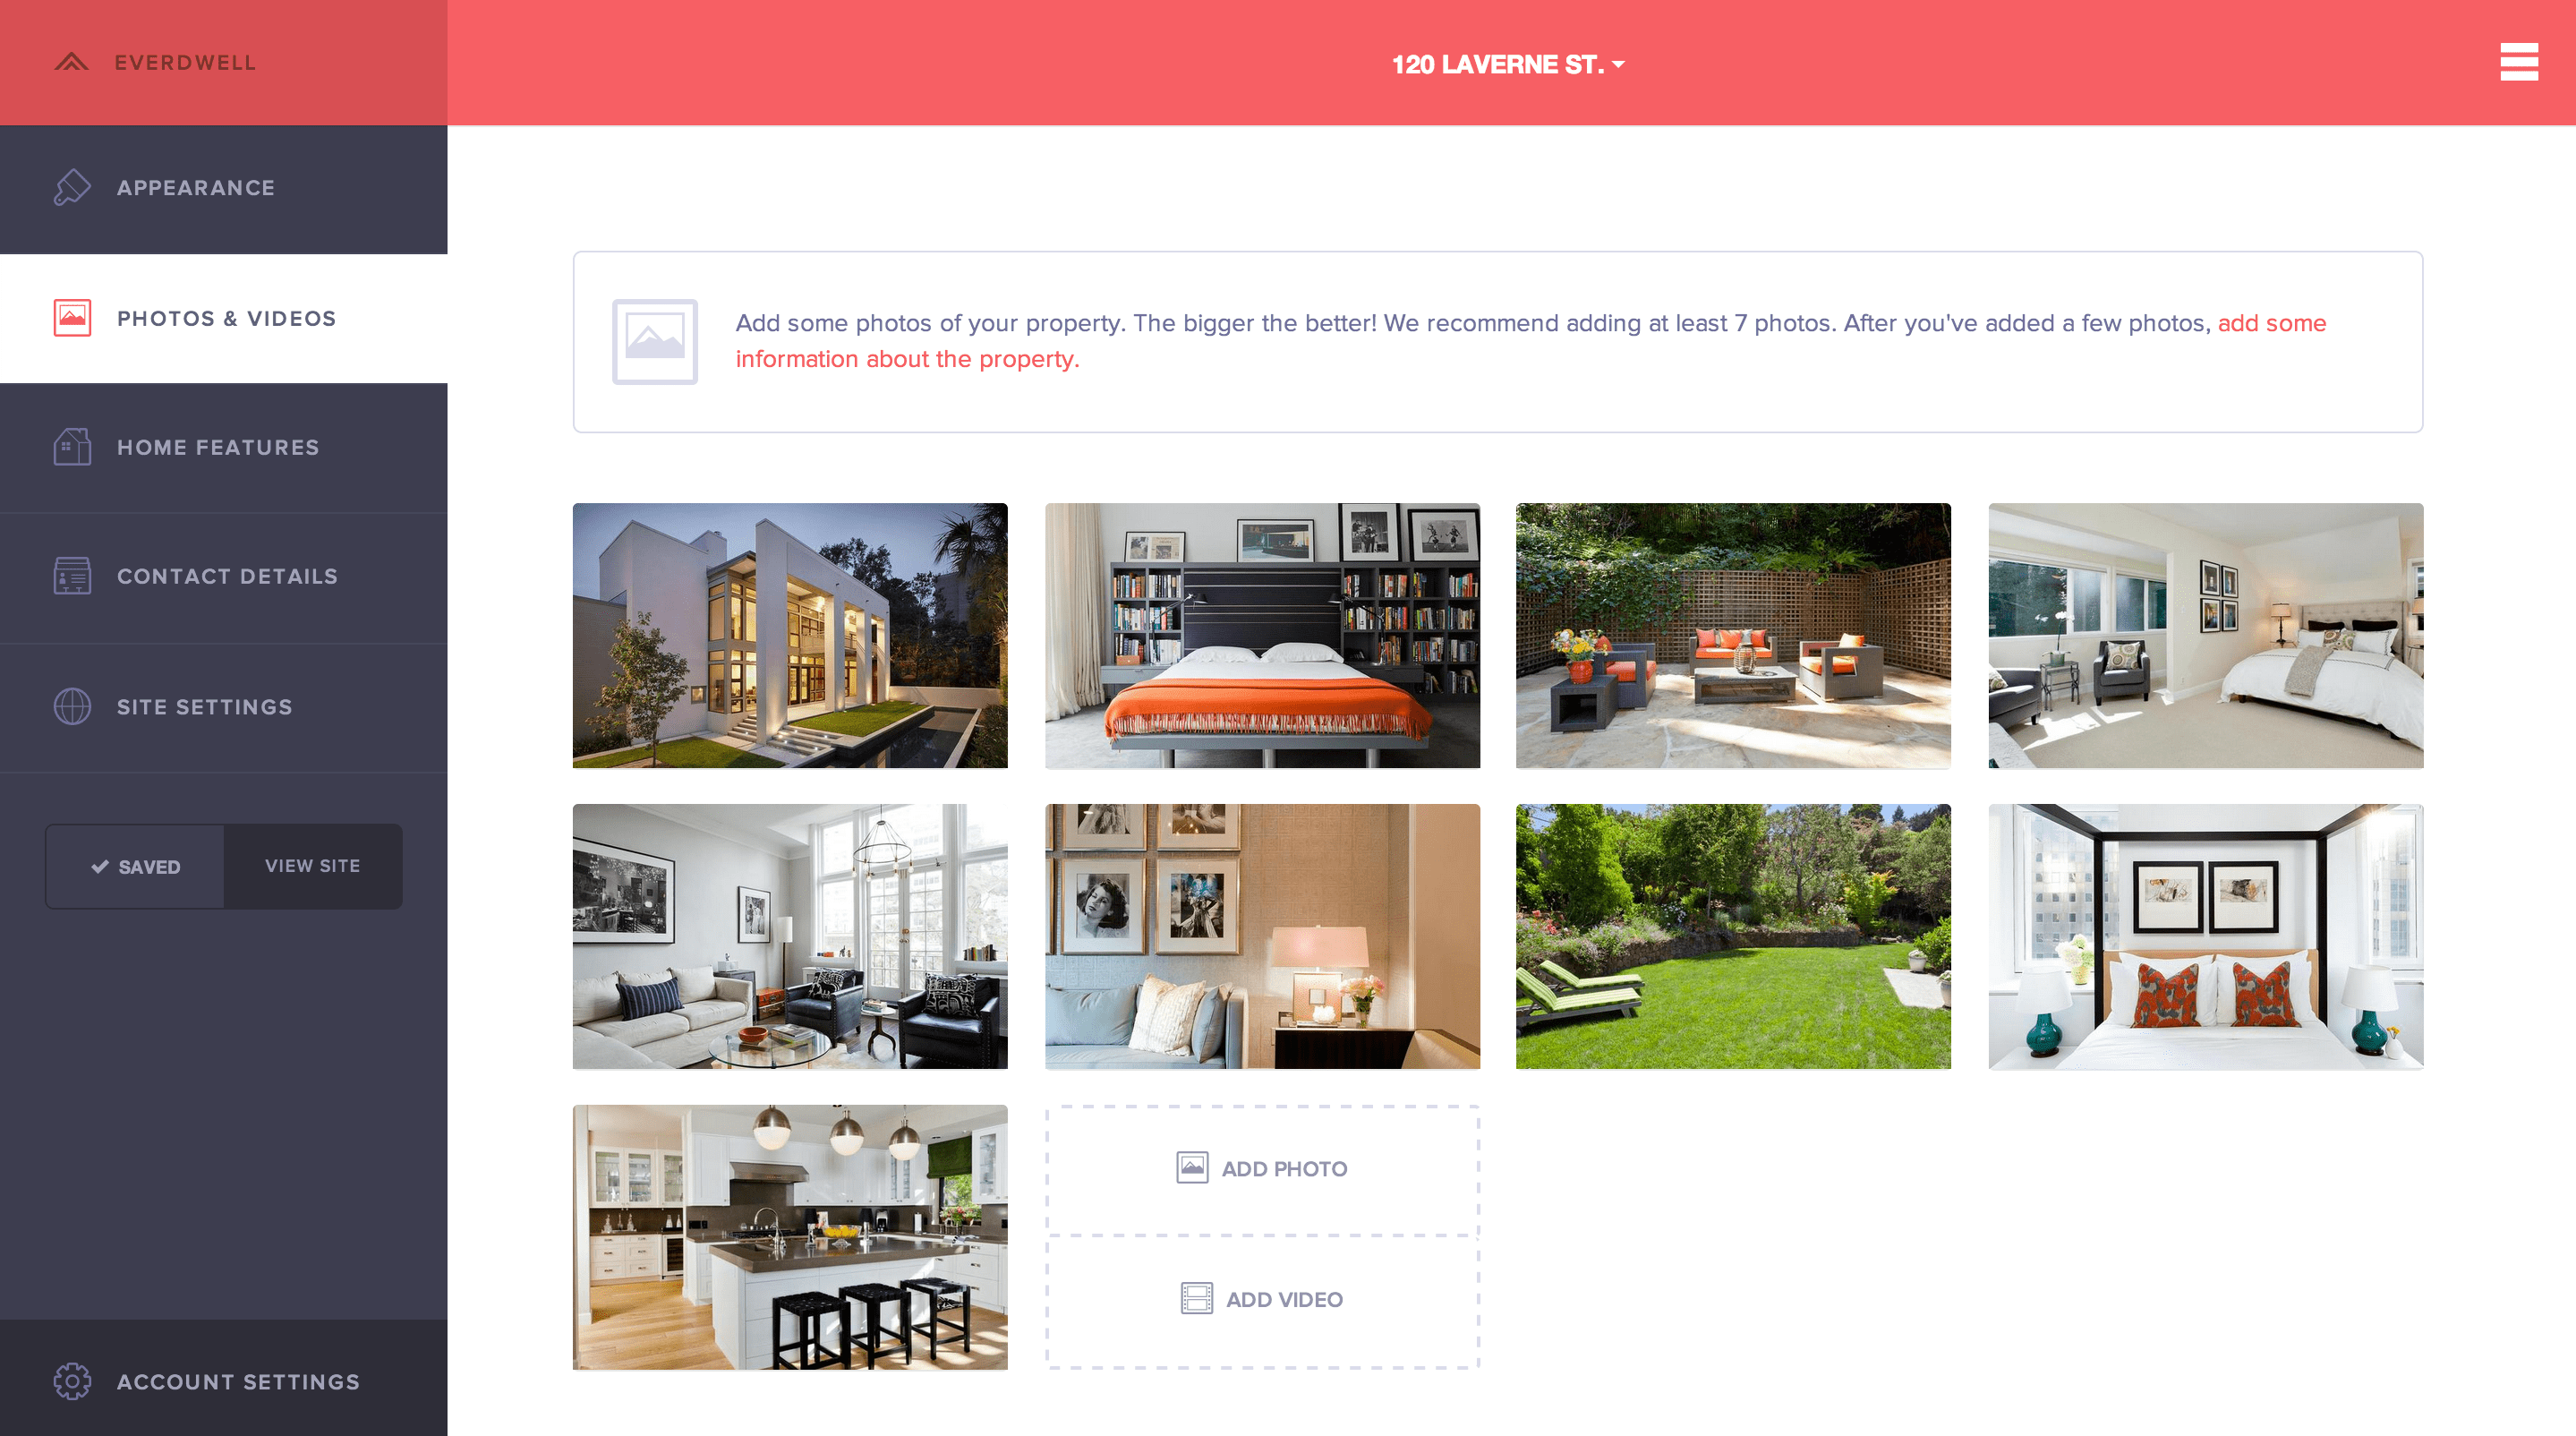 Everdwell is a quick and easy website builder for your home and realtors.